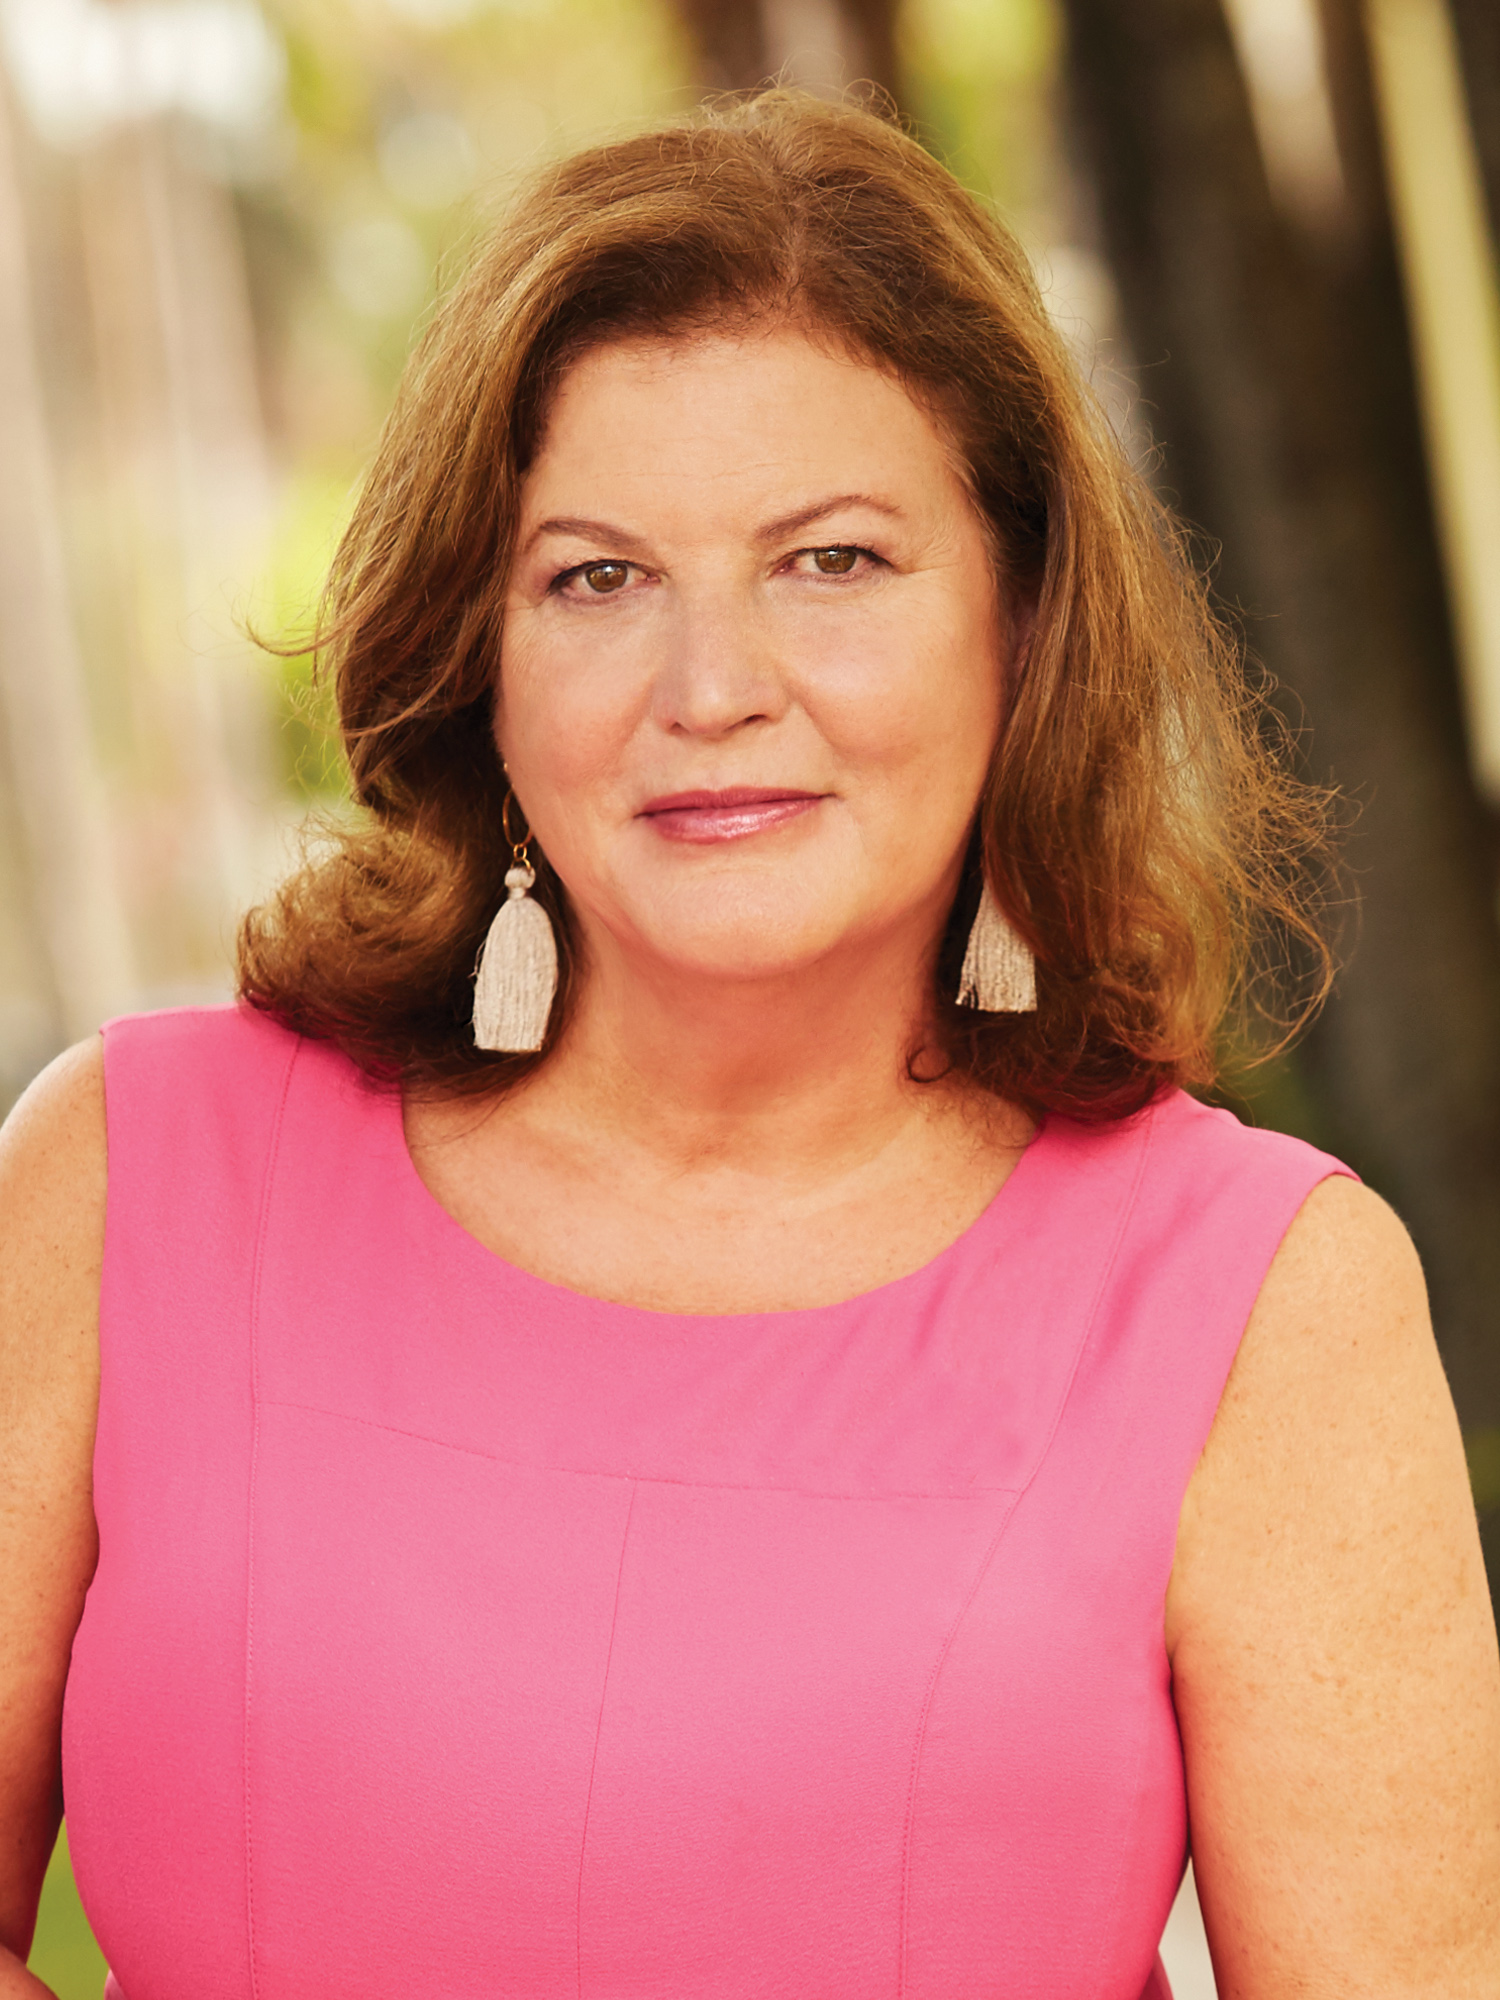 Doreen Danton, a top realtor in South Florida for Corcoran, a real estate firm in Palm Beach.